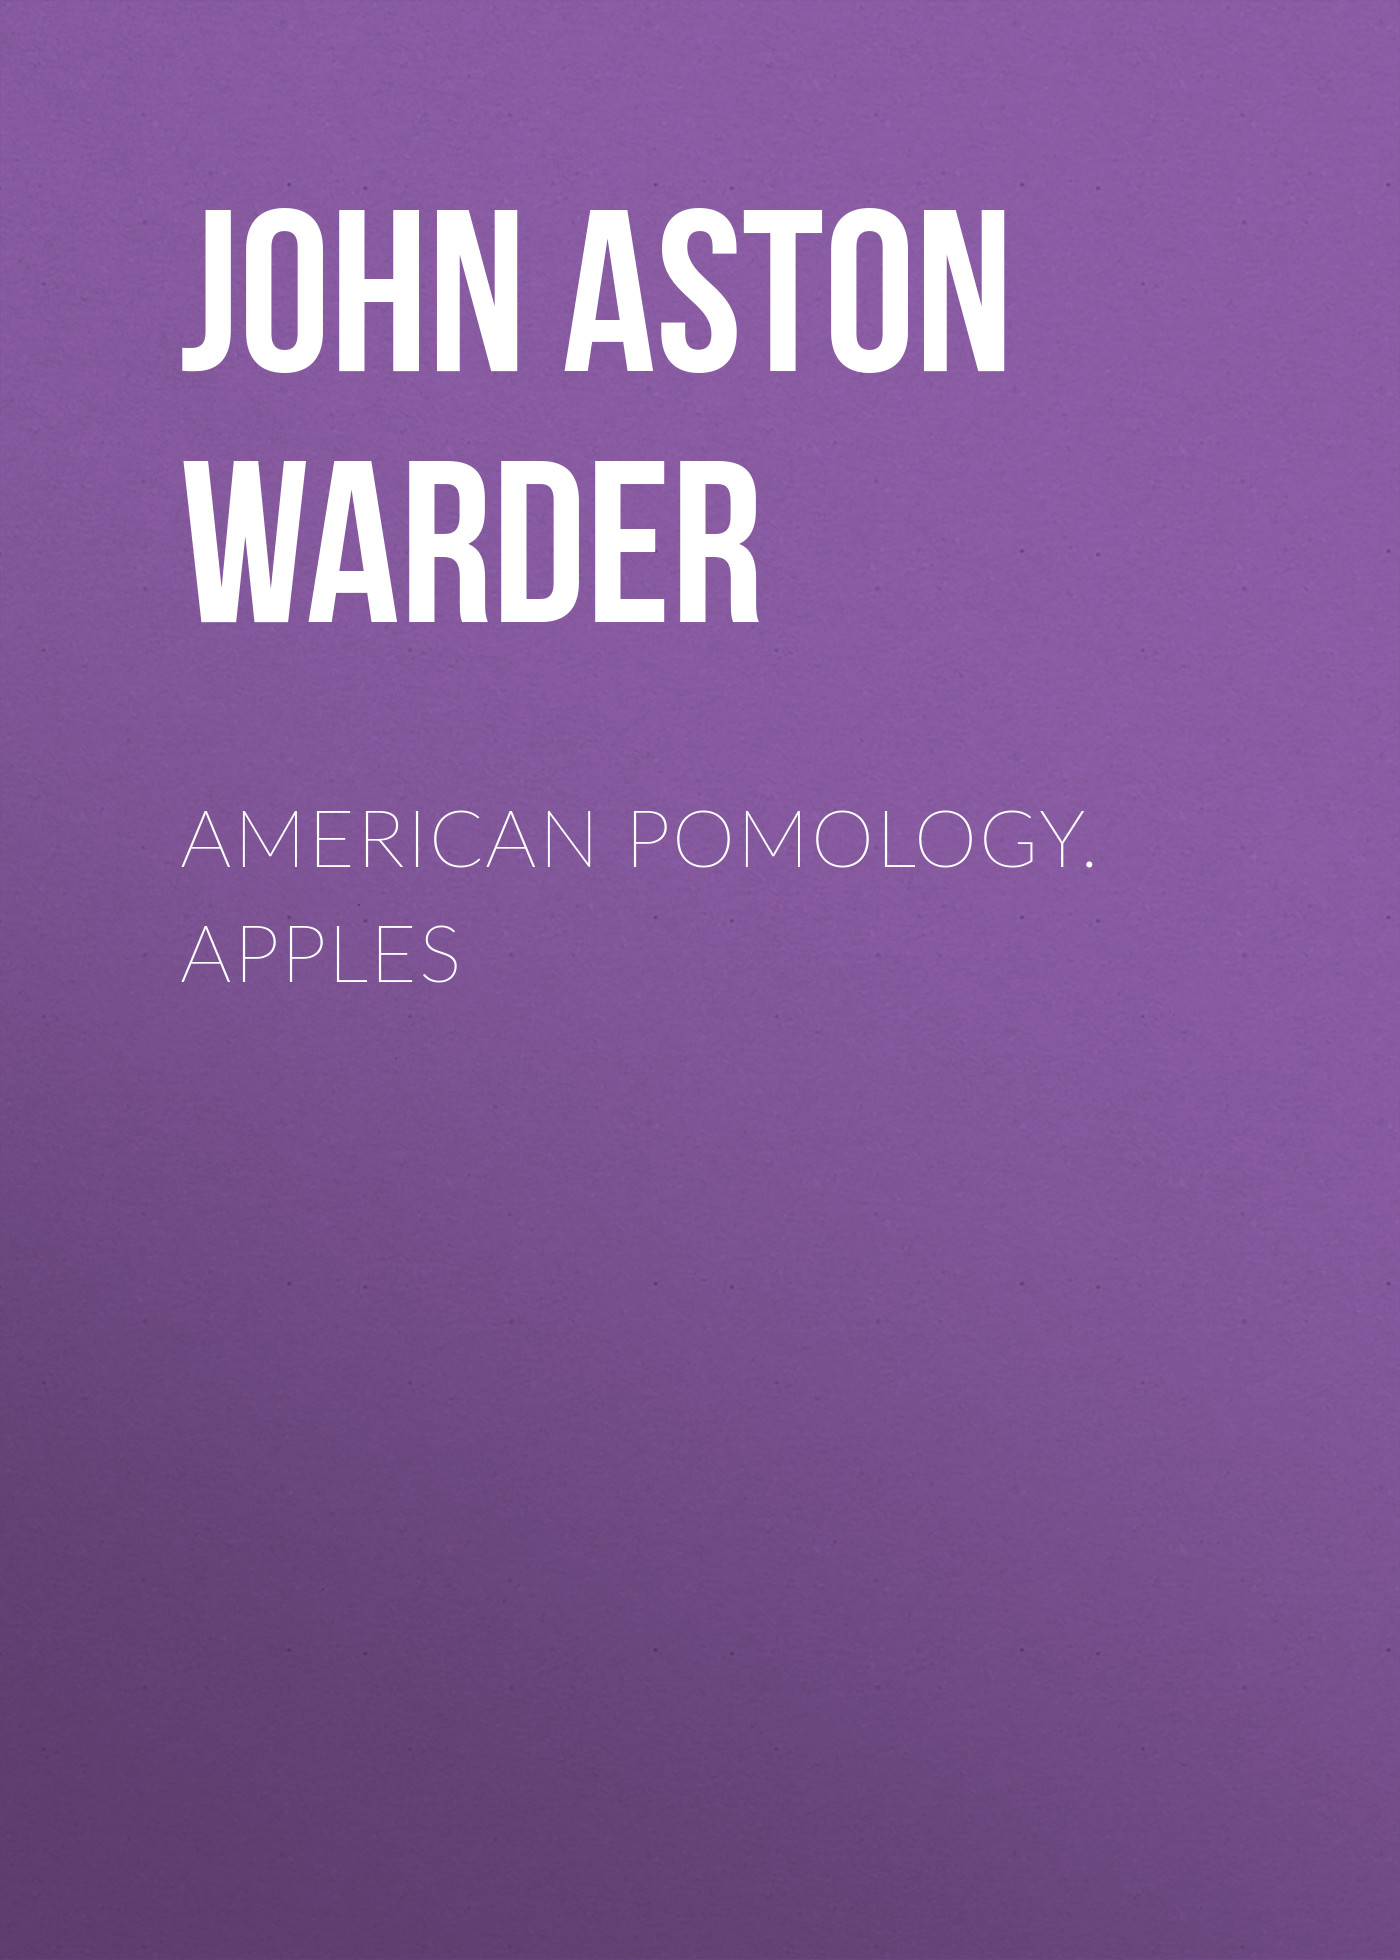 John Aston Warder American Pomology. Apples